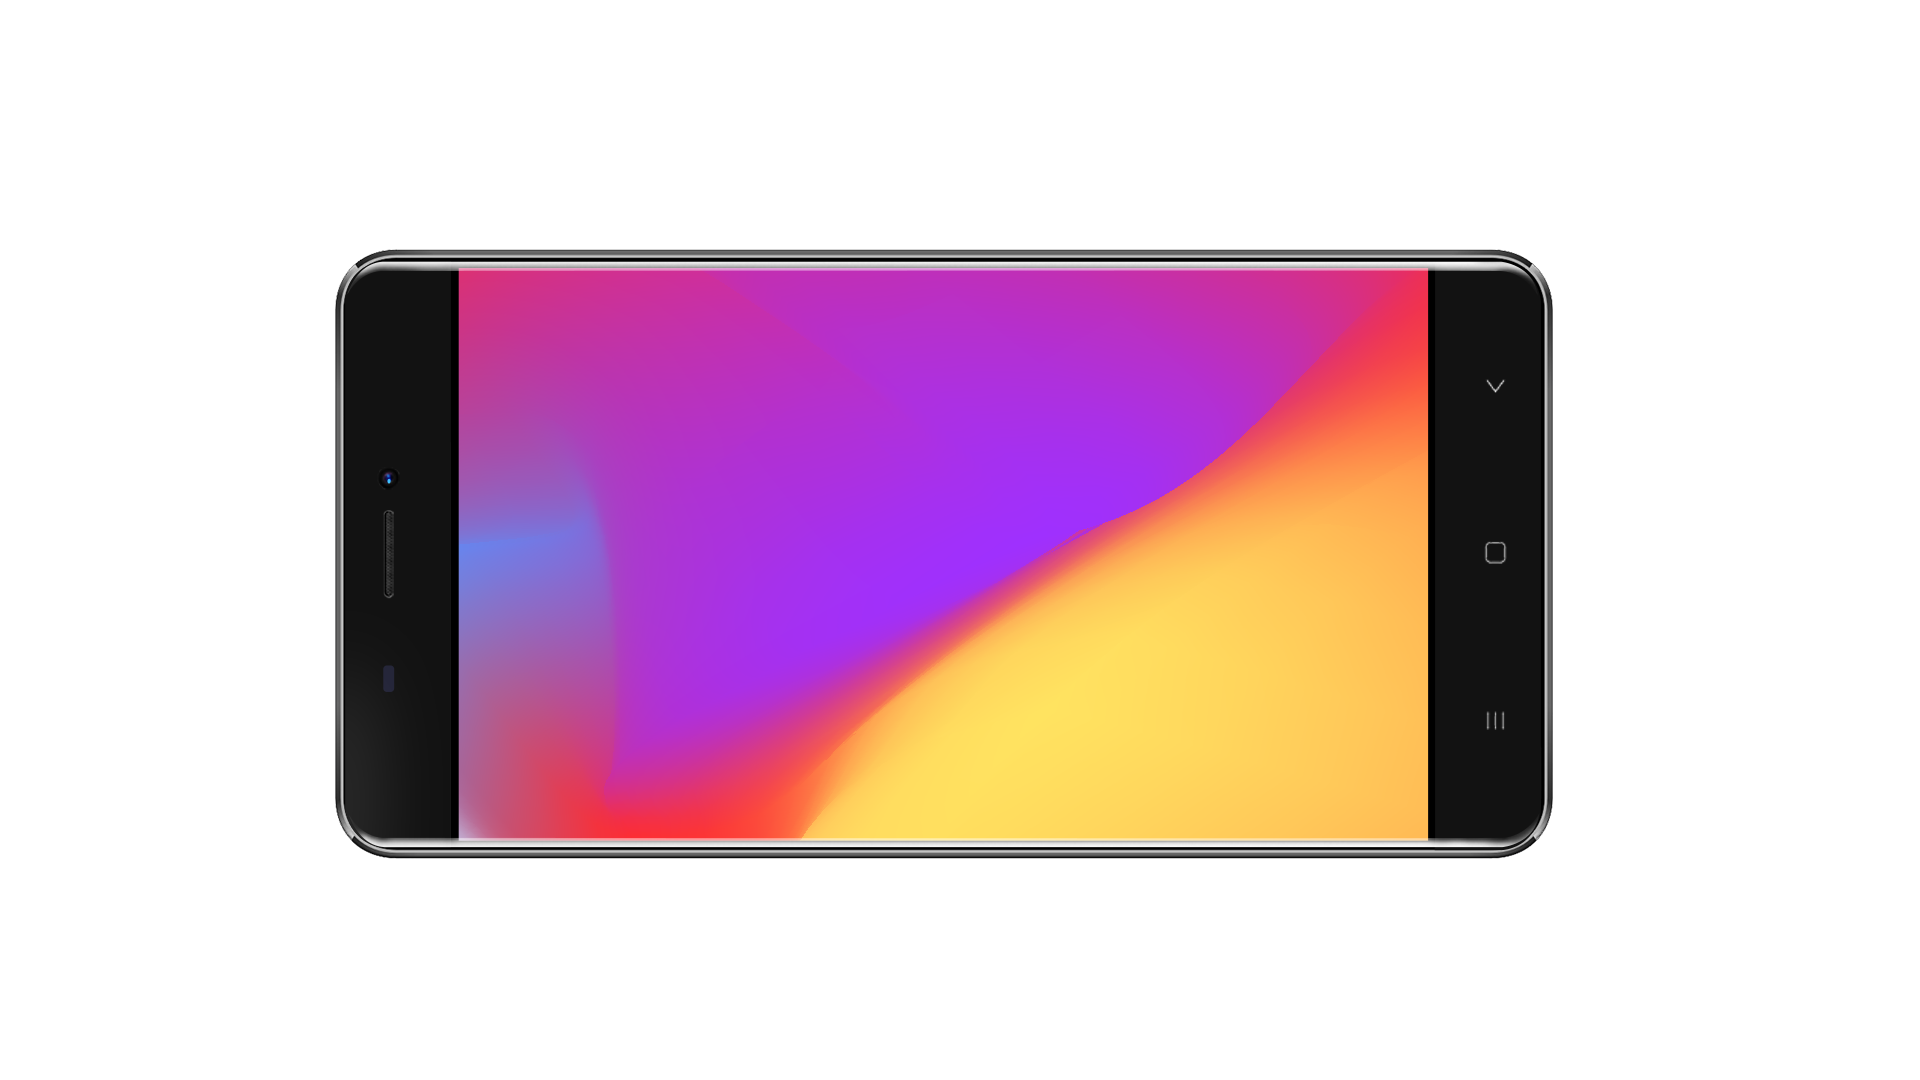 V6  3G Smartphone - Android 6.0 OS, Quad Core CPU4.5-Inch Display, 1700mAh Battery, Front & Rear Camera (Gray)